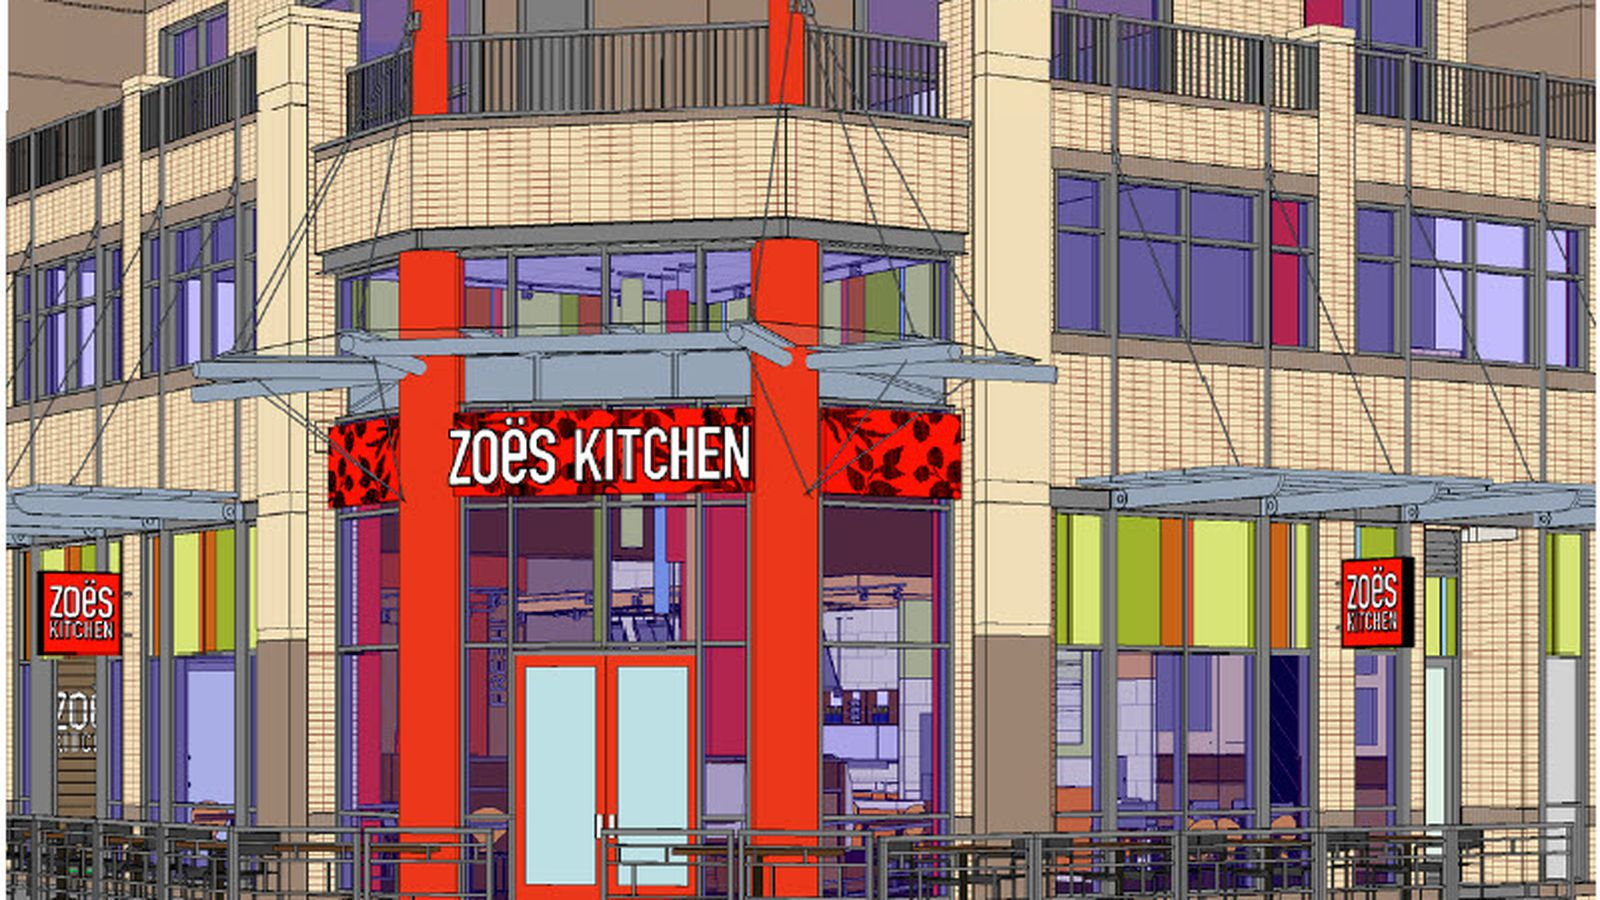 Union Station Gets Fast Casual Mediterranean Eatery Next